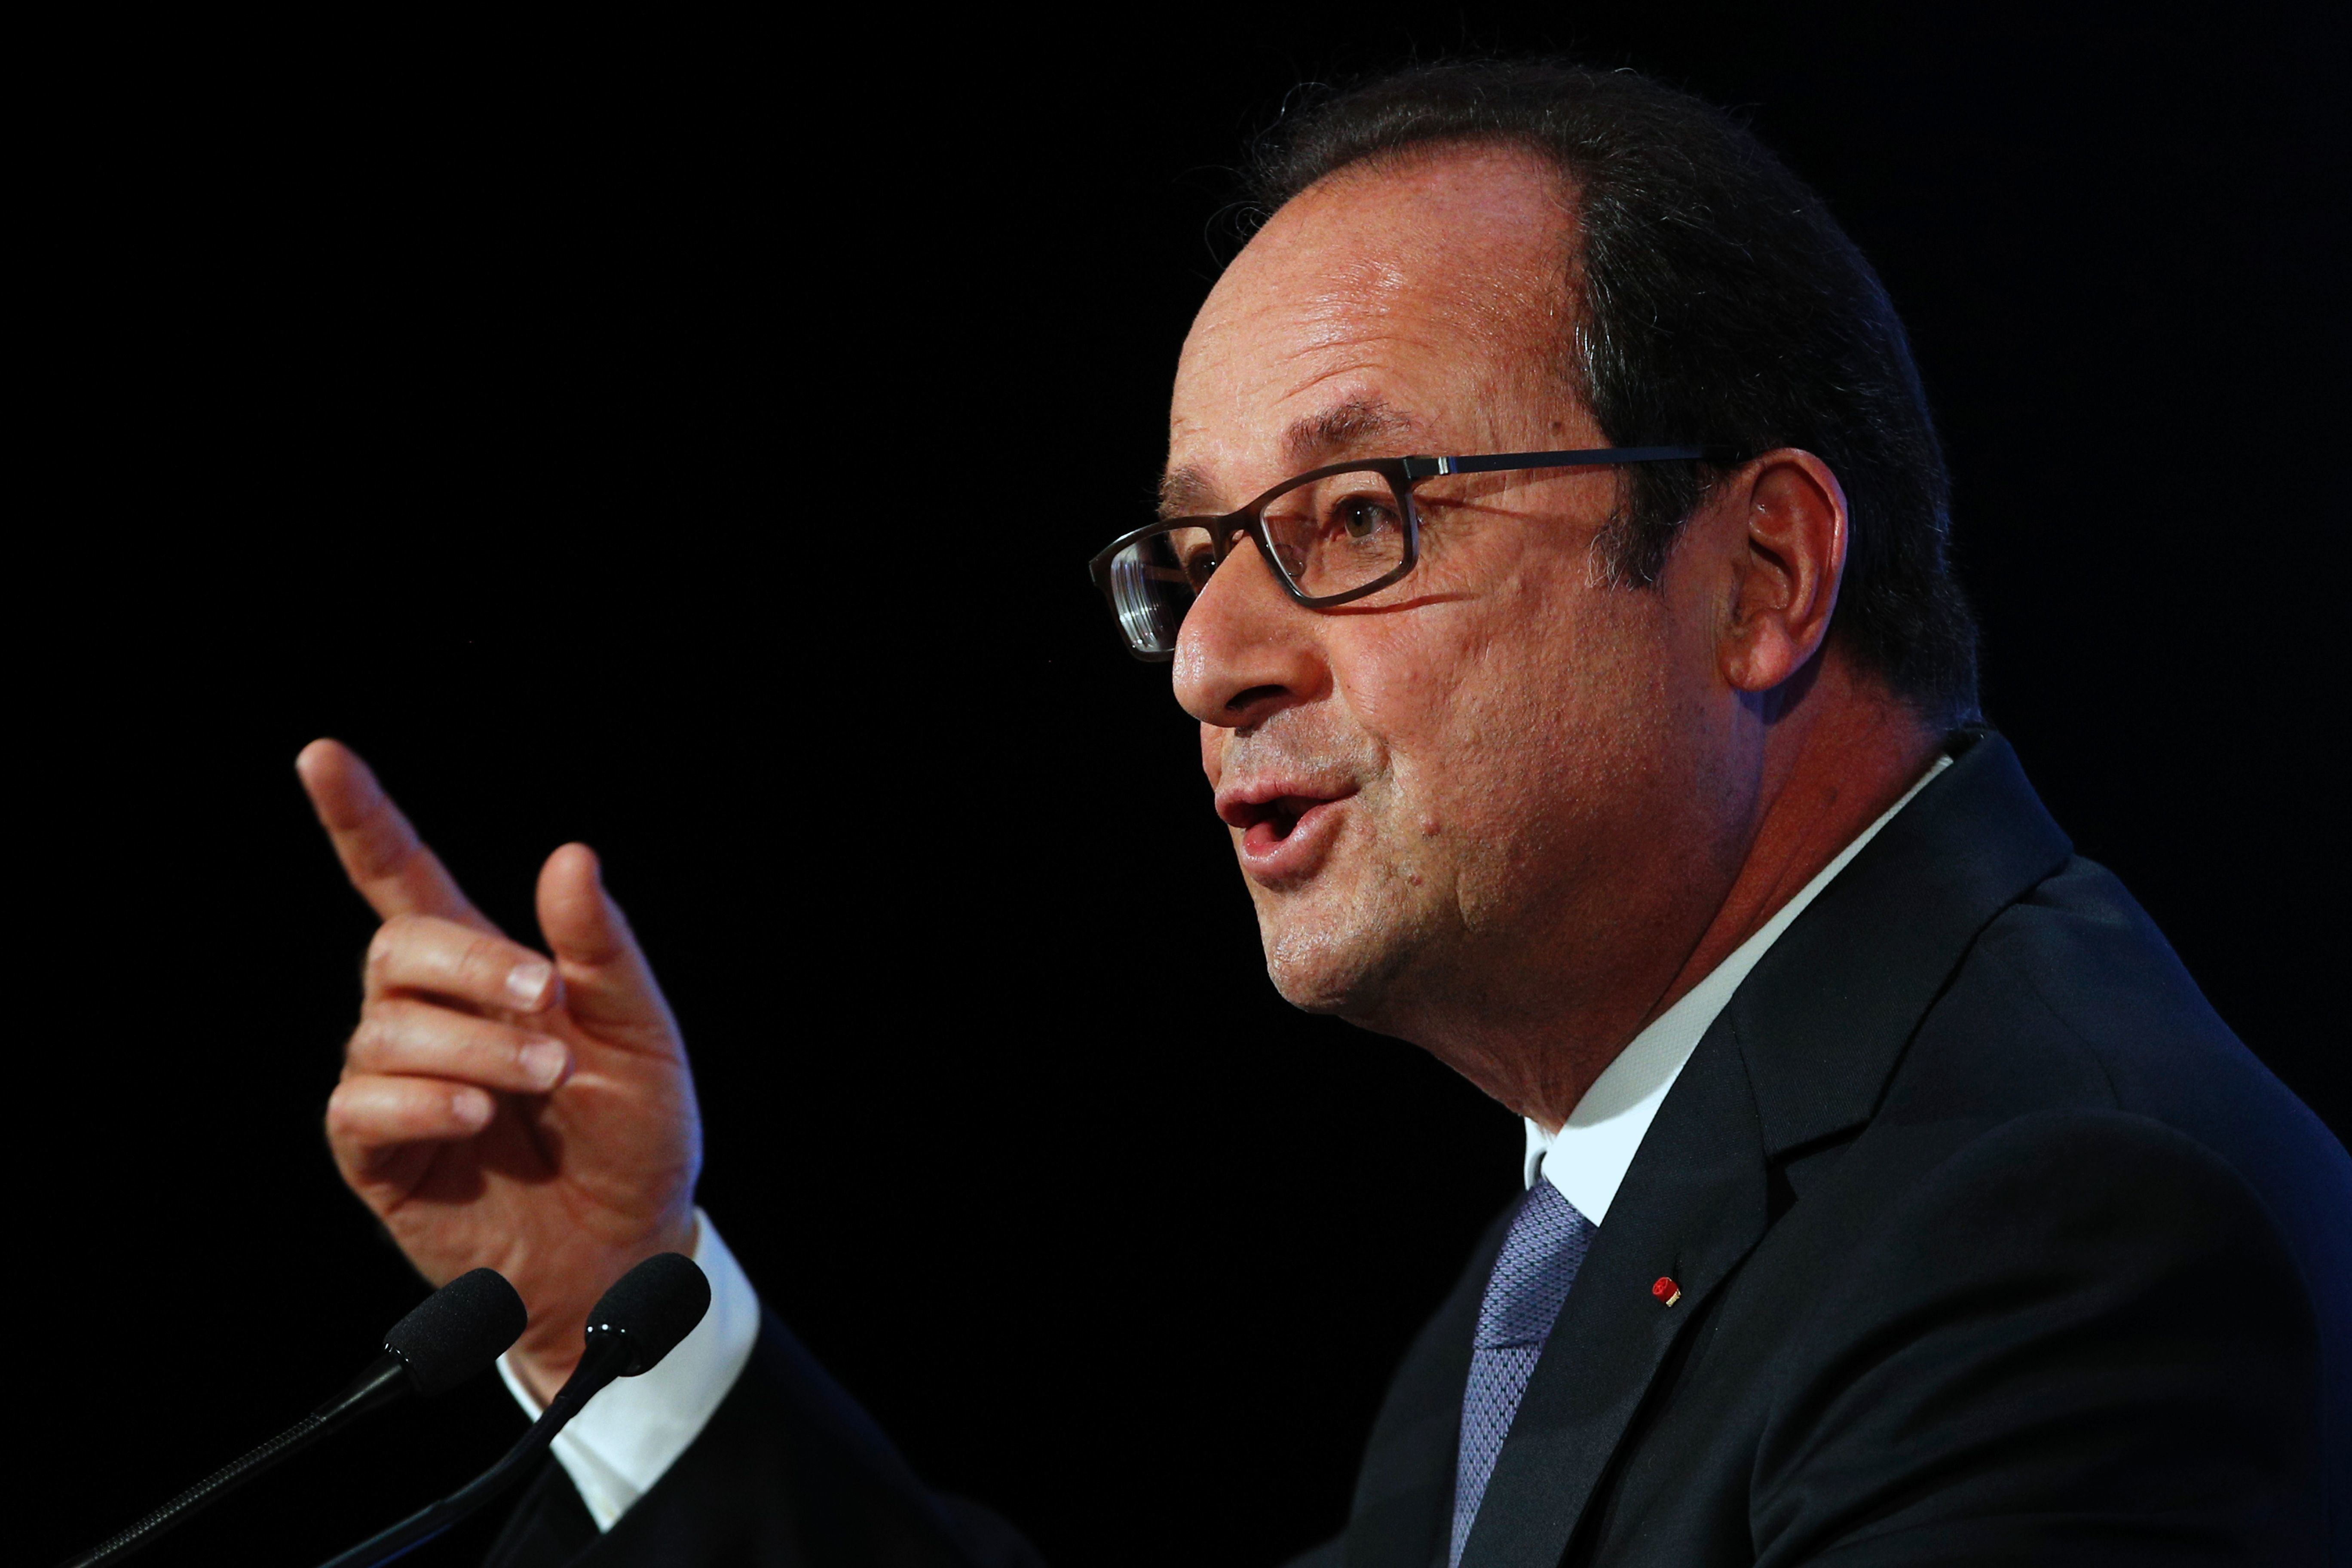 French President Francois Hollande delivers a speech about democracy and terrorism on September 8, 2016 in Paris. President Francois Hollande insisted on September 8, 2016, that France's strict laws separating church and state did not mean the country's large Muslim minority could not practise their religion. In a speech on terrorism and democracy coming hot on the heels of a debate on the banning of the Islamic burkini swimsuit, Hollande said: 'Nothing in the idea of secularism opposes the practise of Islam in France, provided it respects the law.'  / AFP / POOL / Christophe Ena        (Photo credit should read CHRISTOPHE ENA/AFP/Getty Images)